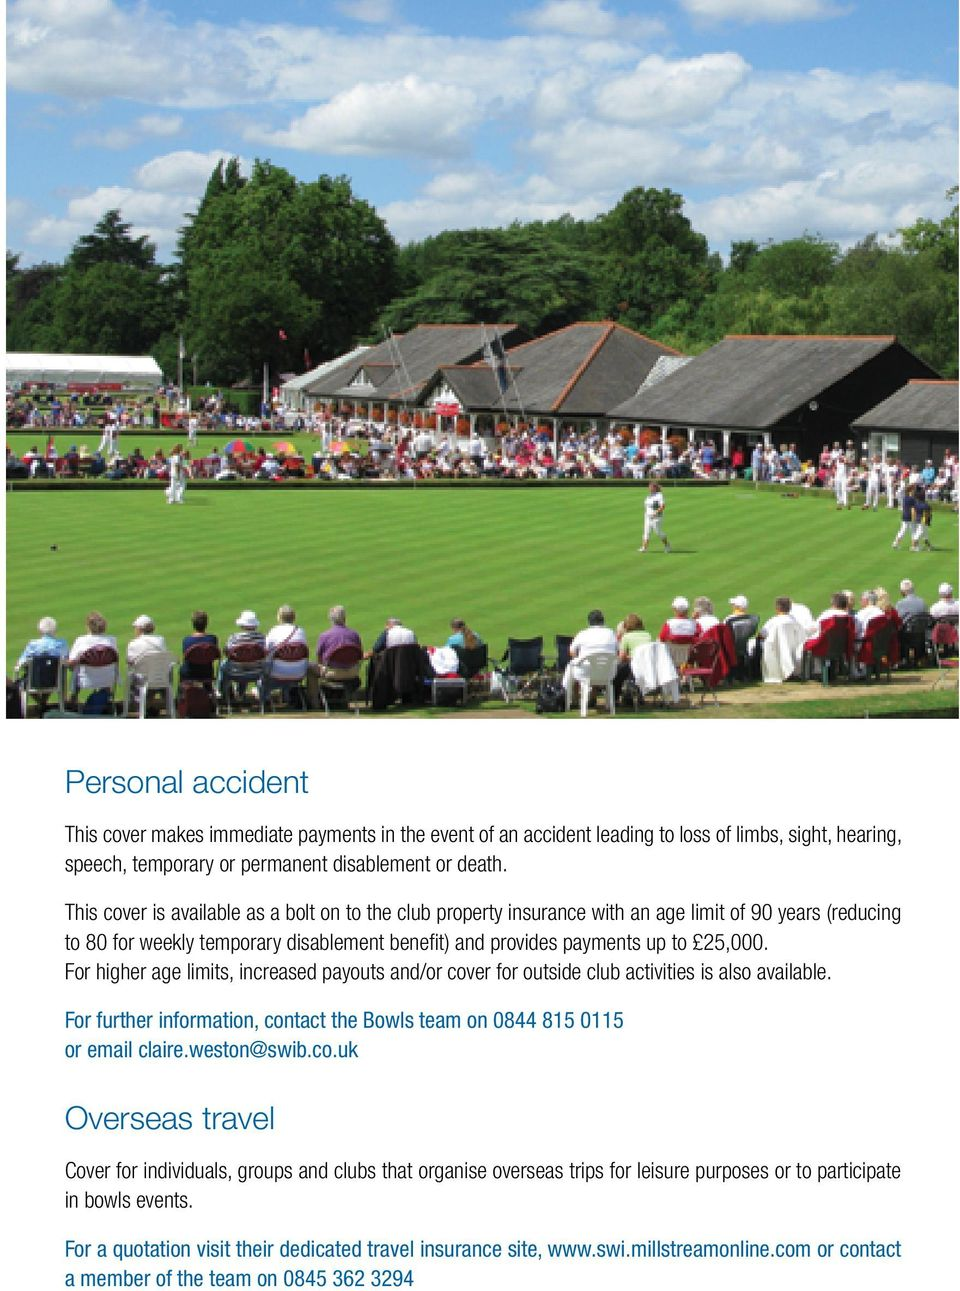 For higher age limits, increased payouts and/or cover for outside club activities is also available. For further information, contact the Bowls team on 0844 815 0115 or email claire.weston@swib.co.uk Overseas travel Cover for individuals, groups and clubs that organise overseas trips for leisure purposes or to participate in bowls events.